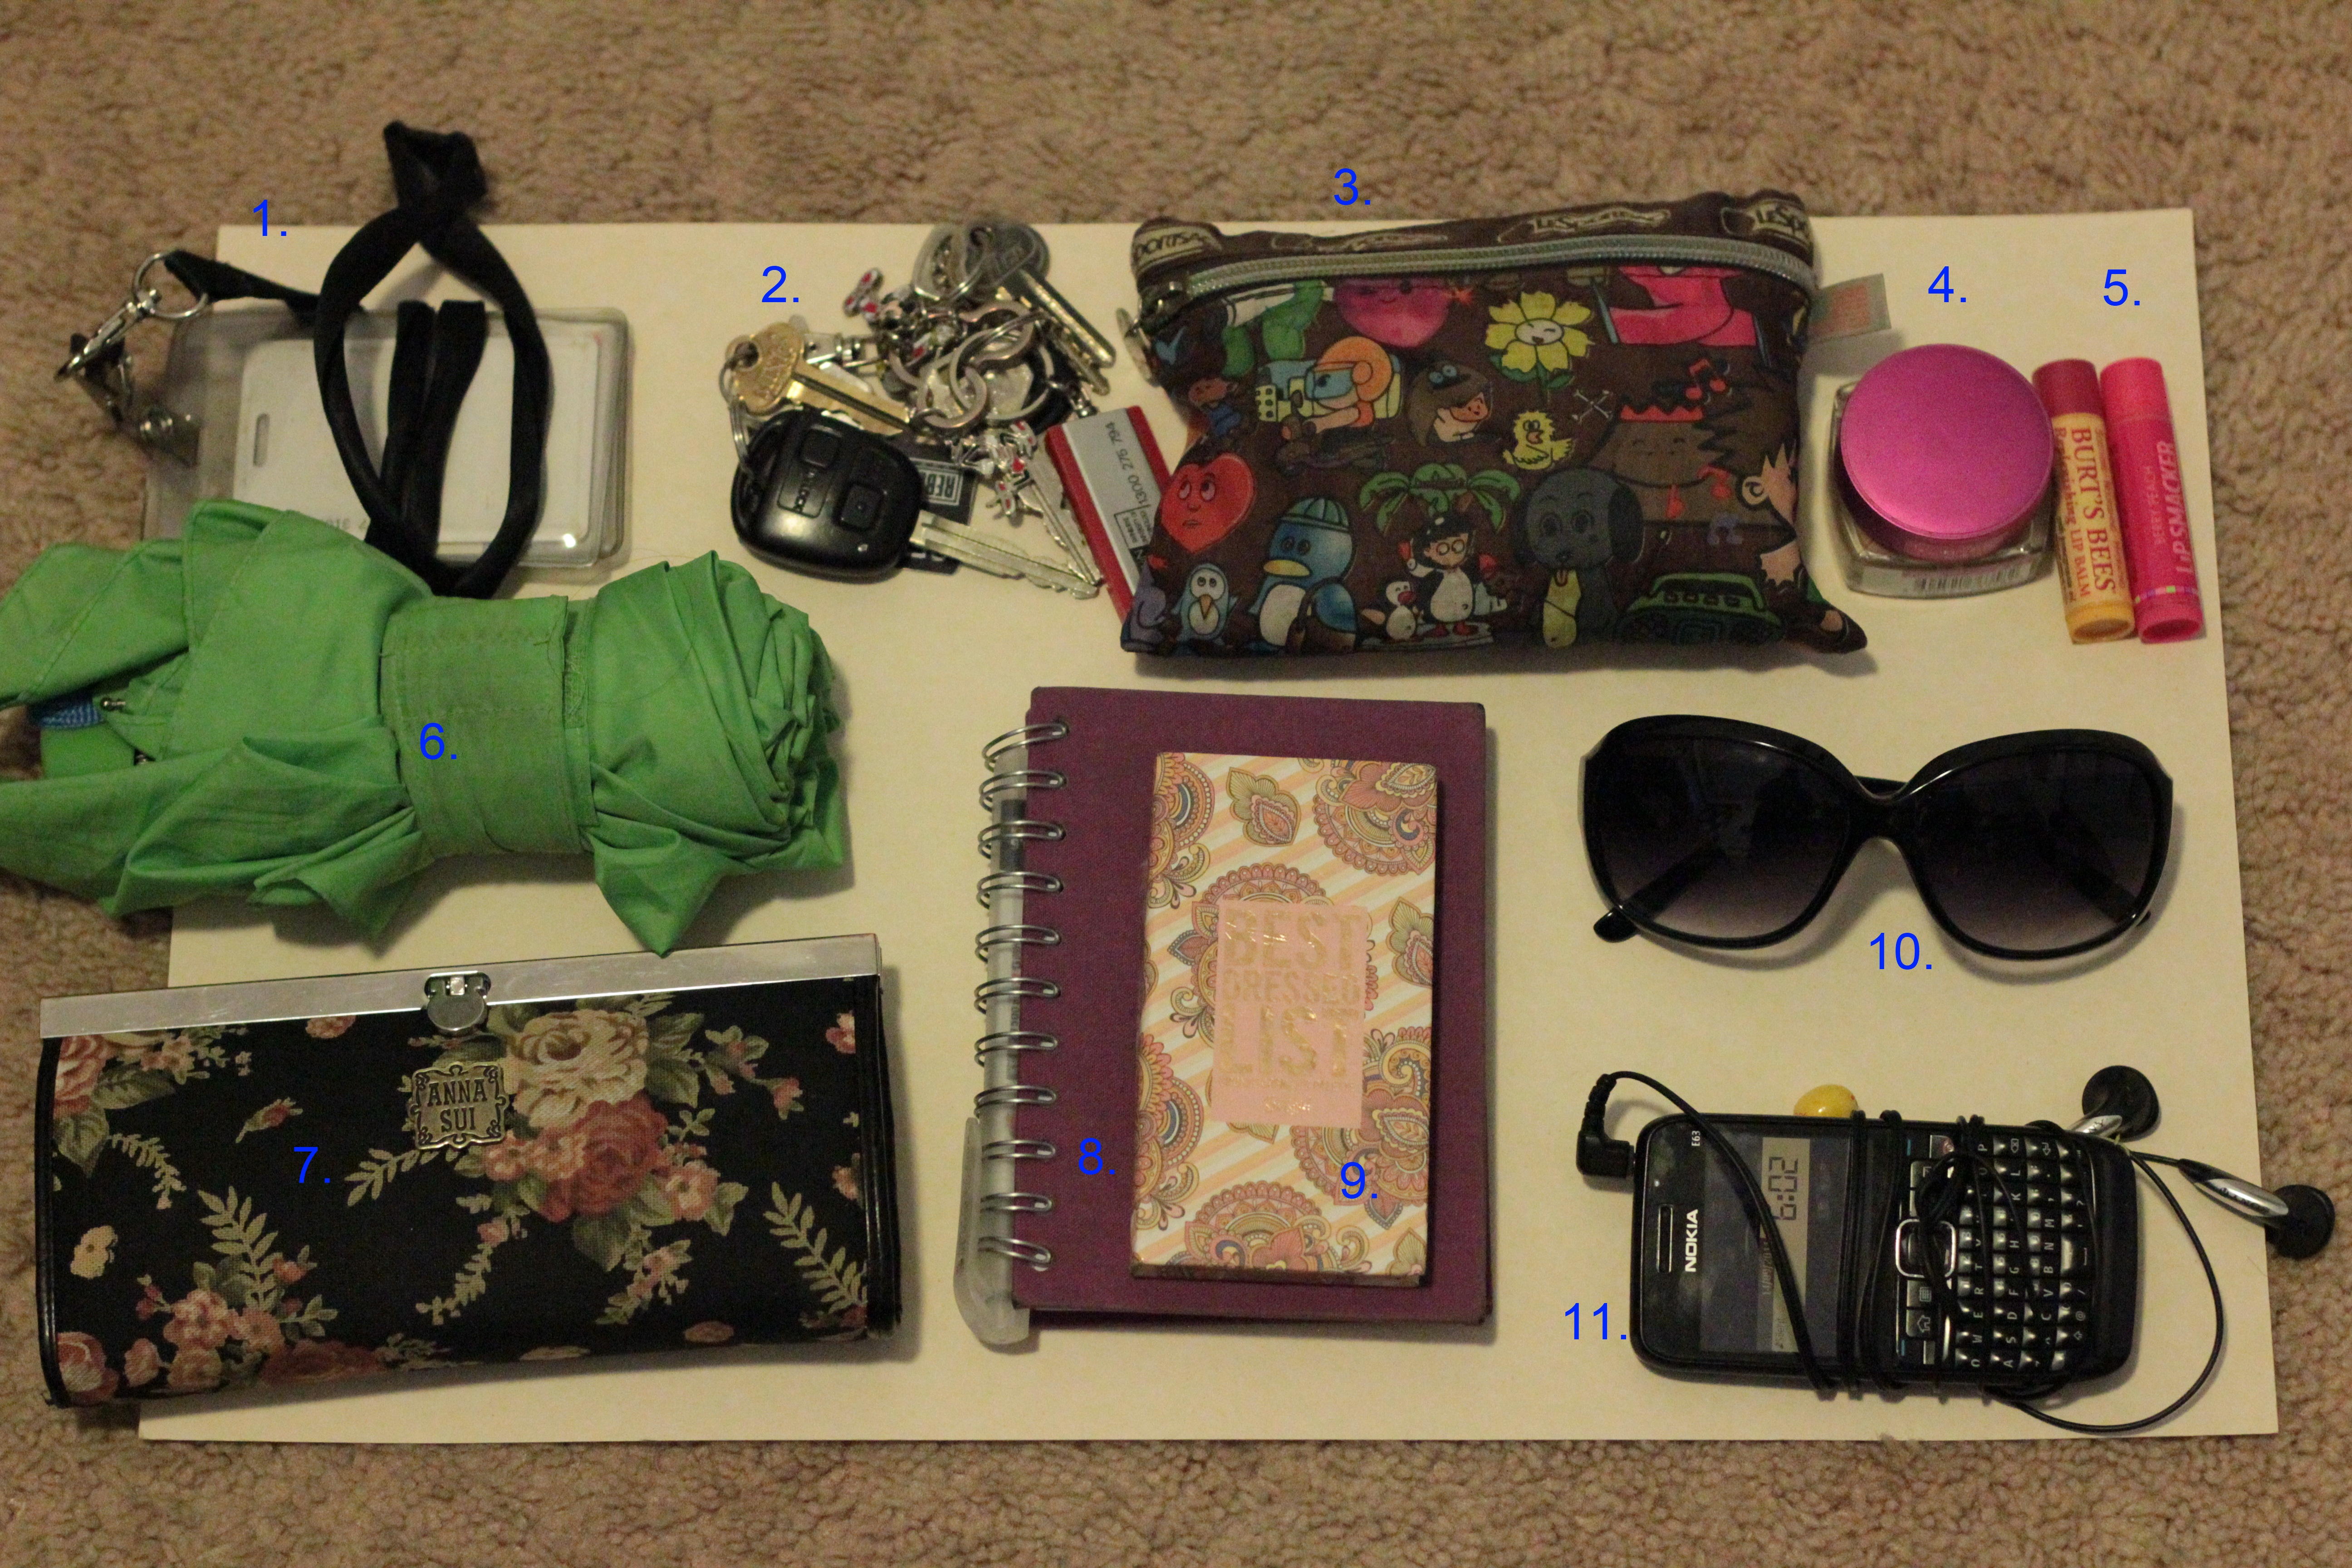 what s in your bag katattack so this is what i bring in my work bag 1 my pass to get into the work building